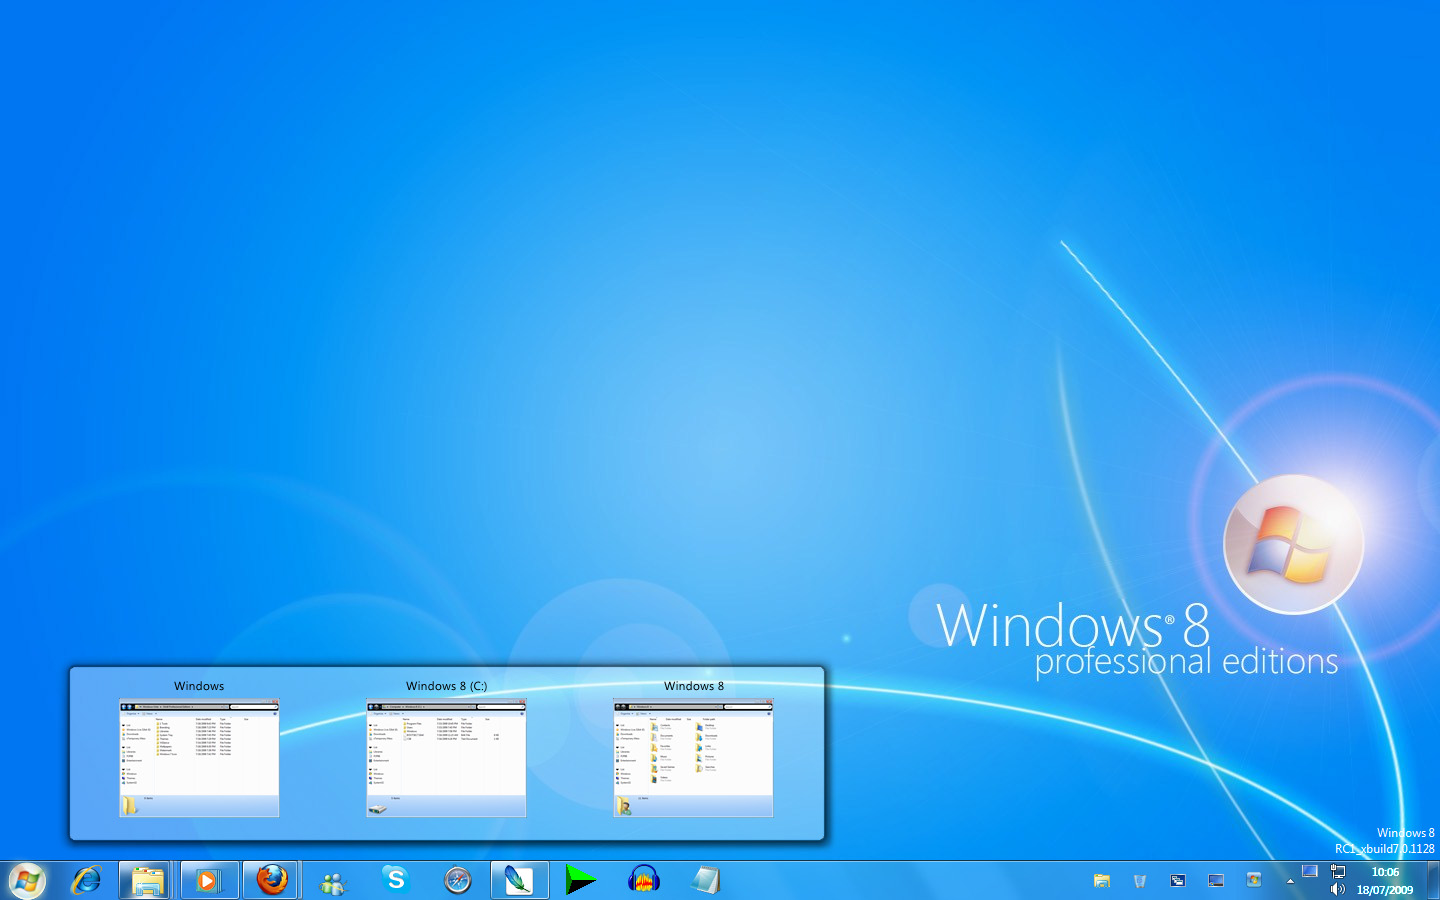 Make windows look like windows 8 with transformation pack